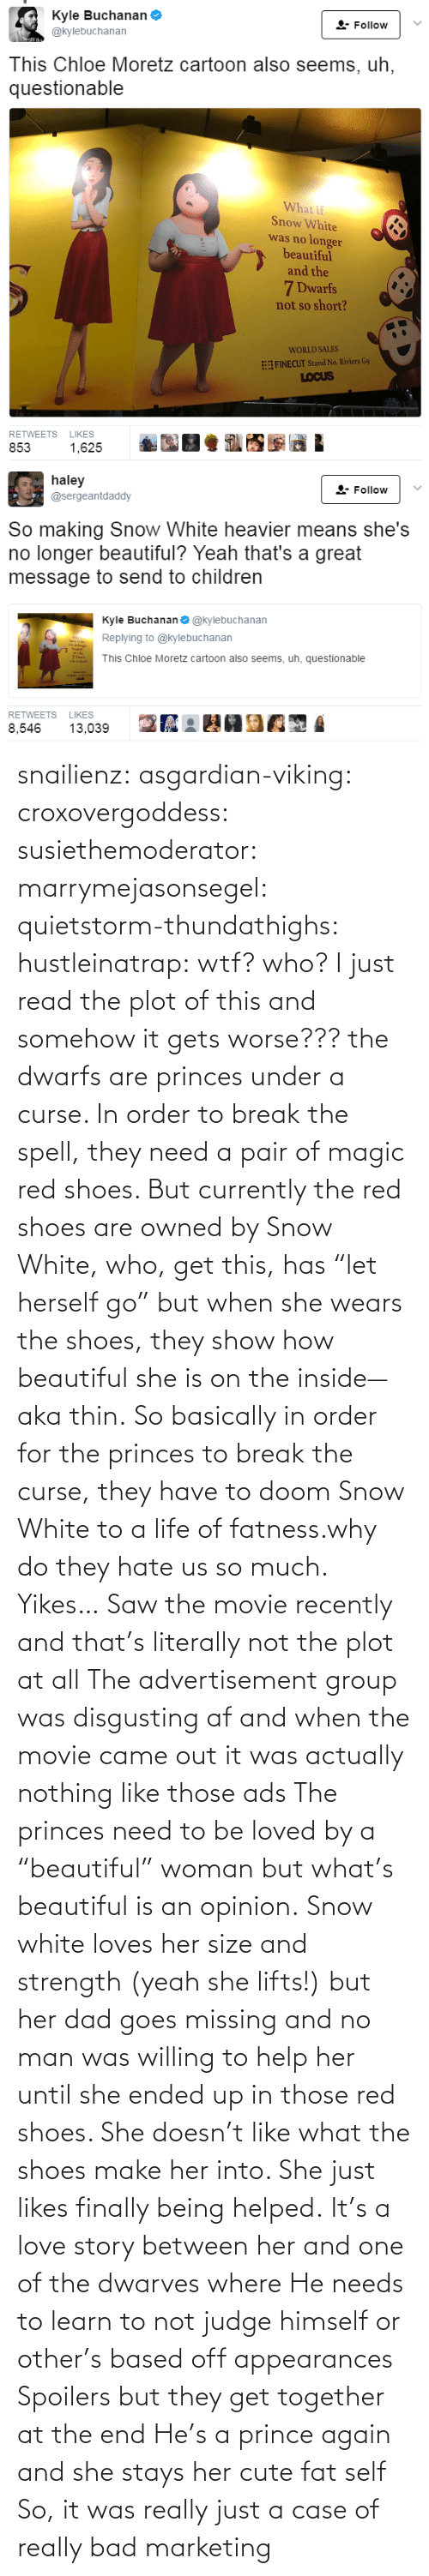 "Basically: snailienz: asgardian-viking:  croxovergoddess:  susiethemoderator:  marrymejasonsegel:   quietstorm-thundathighs:  hustleinatrap: wtf?  who?   I just read the plot of this and somehow it gets worse??? the dwarfs are princes under a curse. In order to break the spell, they need a pair of magic red shoes. But currently the red shoes are owned by Snow White, who, get this, has ""let herself go"" but when she wears the shoes, they show how beautiful she is on the inside—aka thin. So basically in order for the princes to break the curse, they have to doom Snow White to a life of fatness.why do they hate us so much.   Yikes…    Saw the movie recently and that's literally not the plot at all The advertisement group was disgusting af and when the movie came out it was actually nothing like those ads The princes need to be loved by a ""beautiful"" woman but what's beautiful is an opinion. Snow white loves her size and strength (yeah she lifts!) but her dad goes missing and no man was willing to help her until she ended up in those red shoes. She doesn't like what the shoes make her into. She just likes finally being helped. It's a love story between her and one of the dwarves where He needs to learn to not judge himself or other's based off appearances  Spoilers but they get together at the end He's a prince again and she stays her cute fat self  So, it was really just a case of really bad marketing"